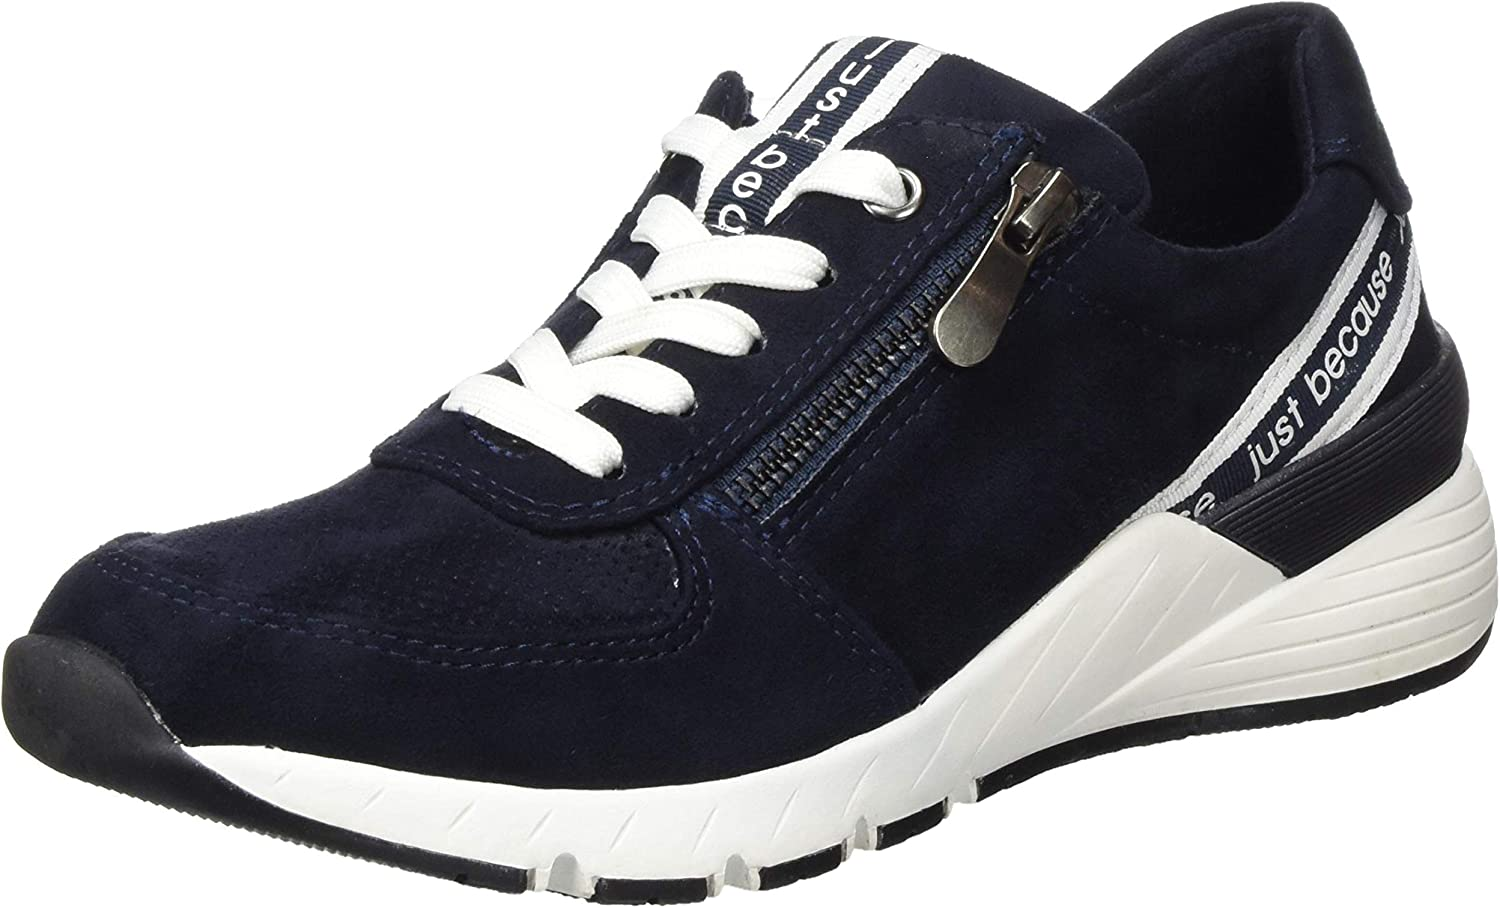 Marco Tozzi quality assurance Over item handling Women's Sneakers Low-top